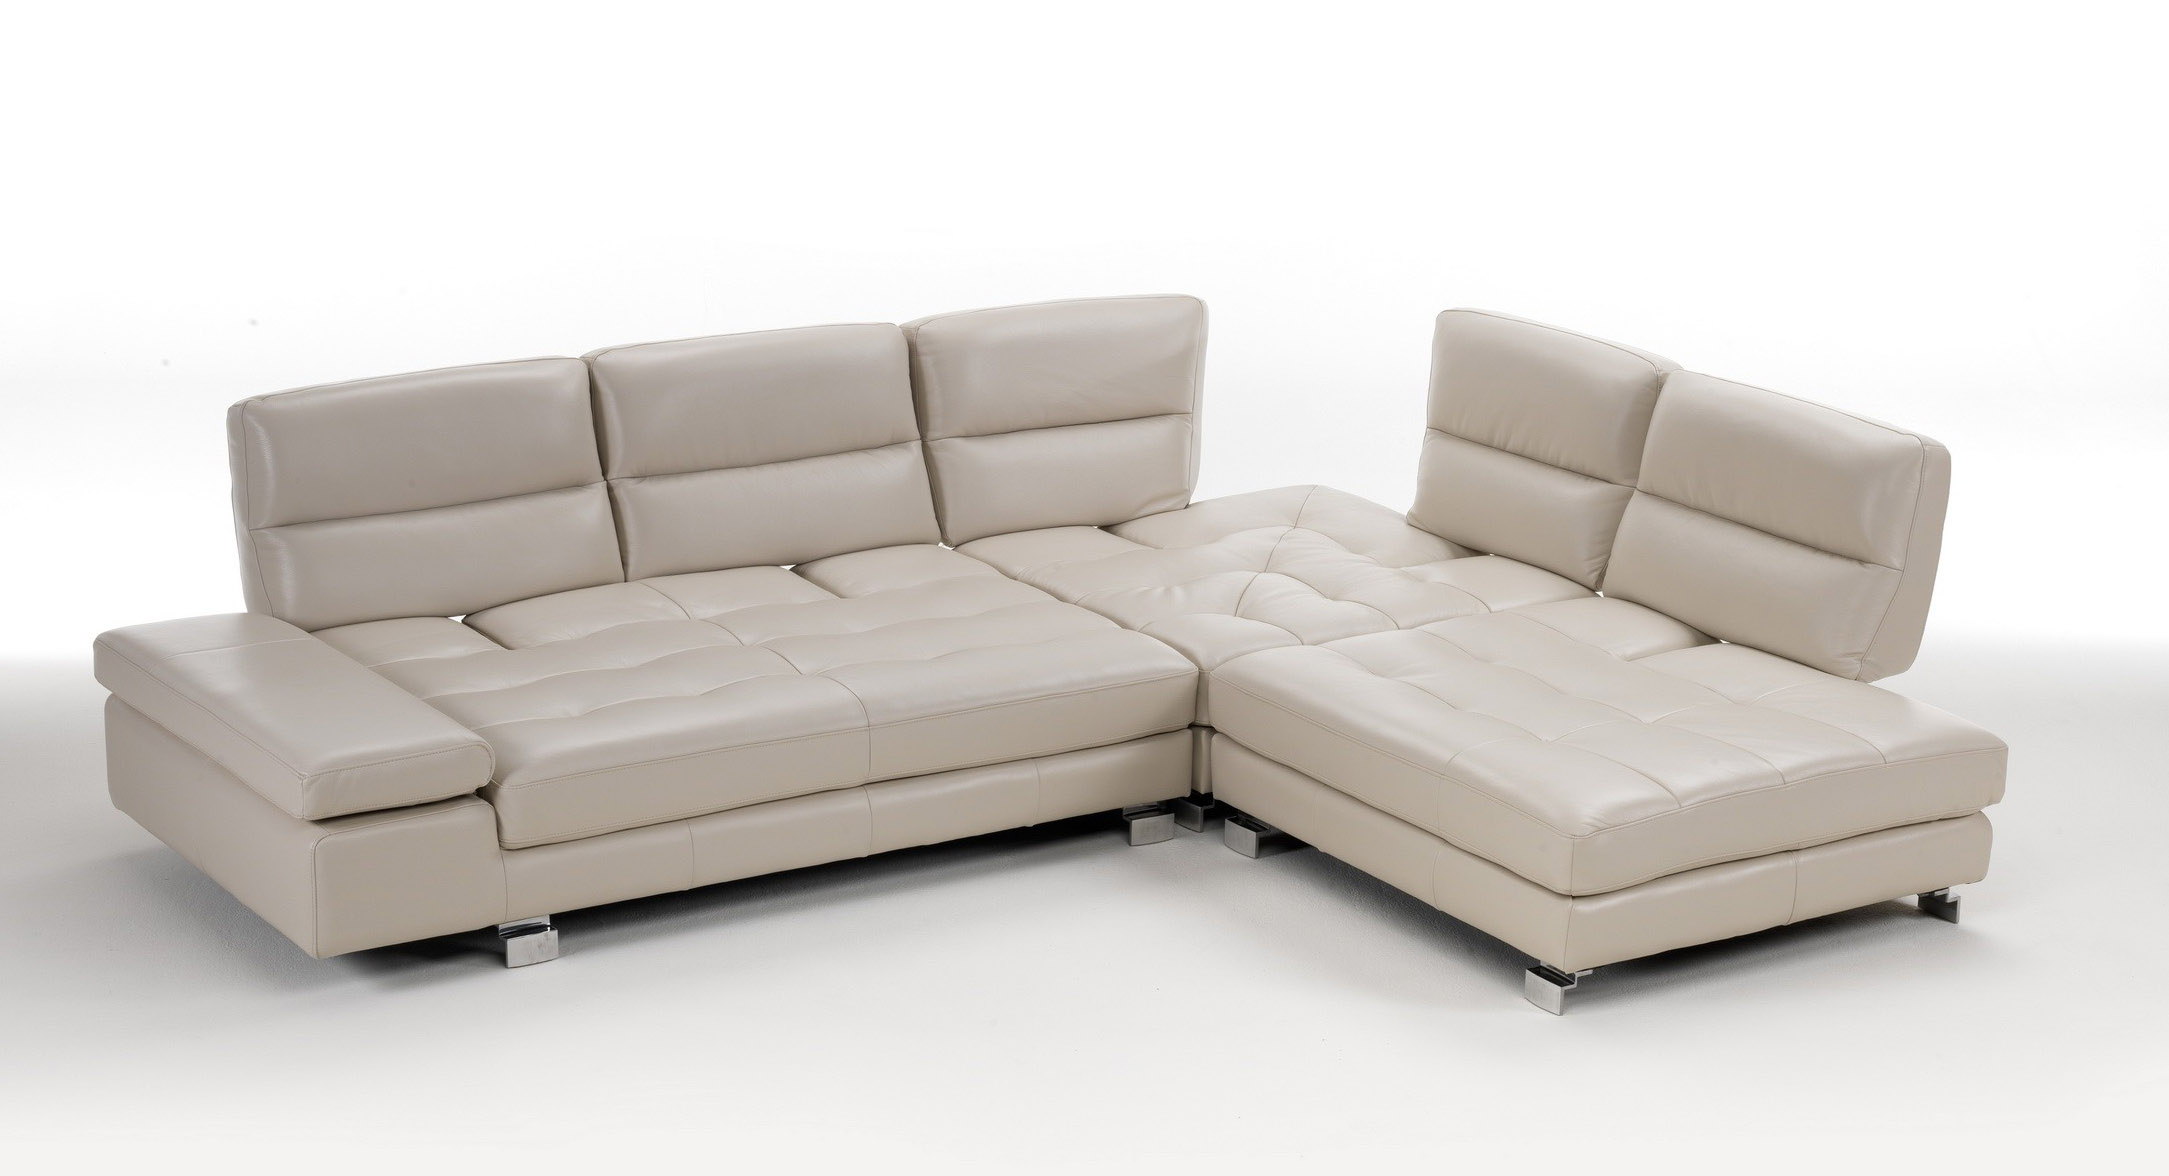 Overnice Tufted Leather Corner Sectional Sofa With